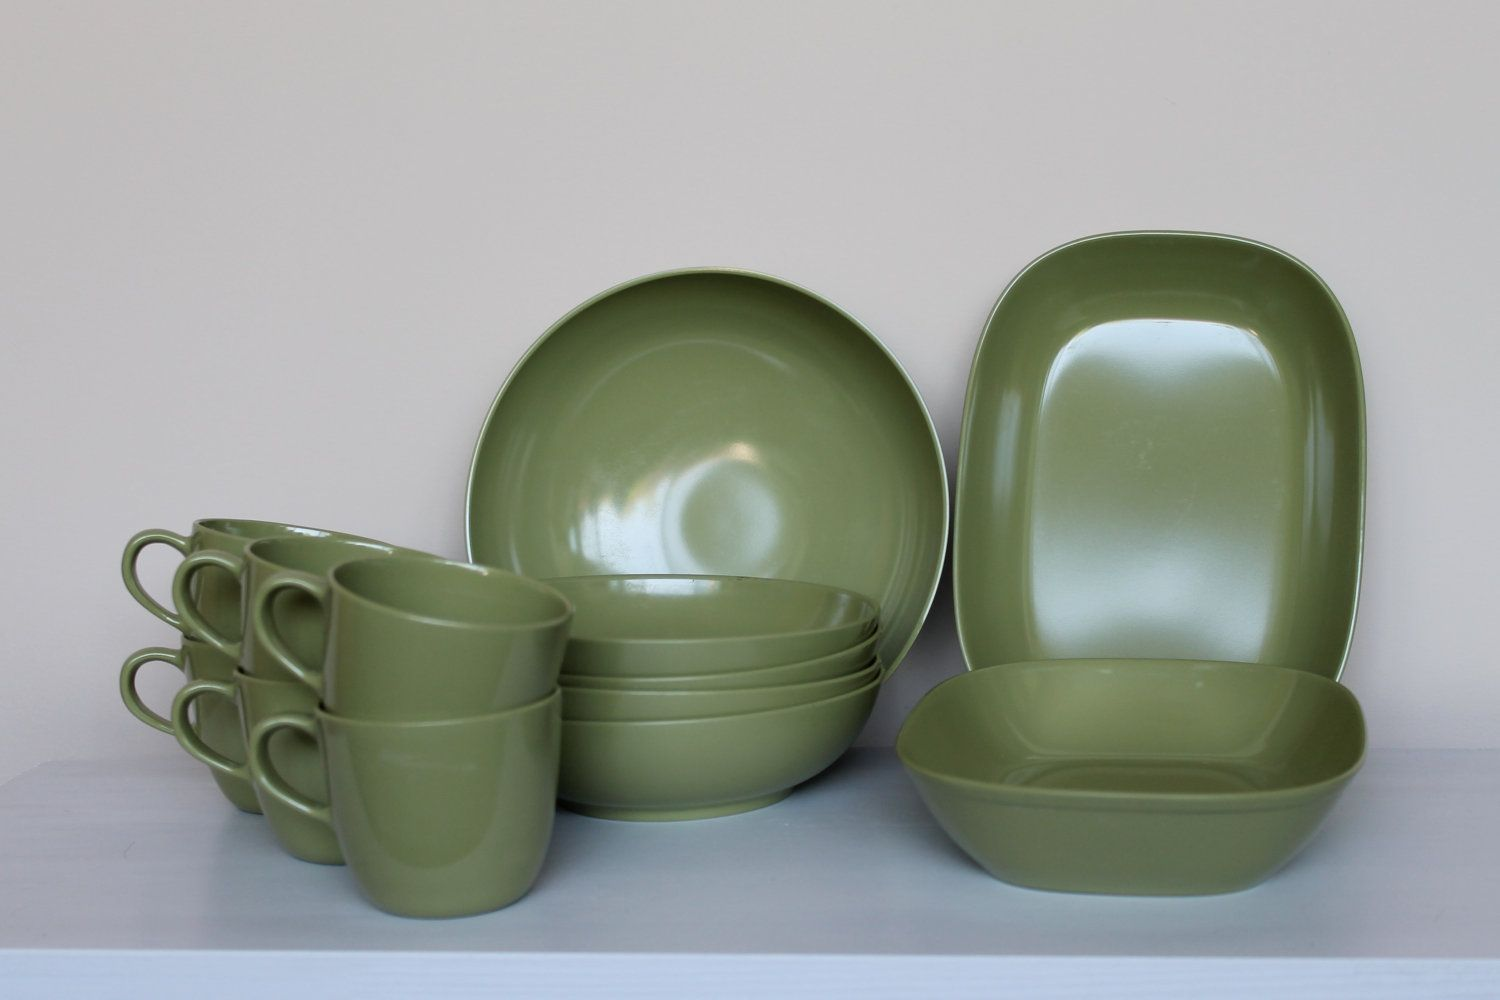 1950s set of 16 Melmac dishes by Texas Ware in acid avocado green. Branchell & 1950s set of 16 Melmac dishes by Texas Ware in acid avocado green ...